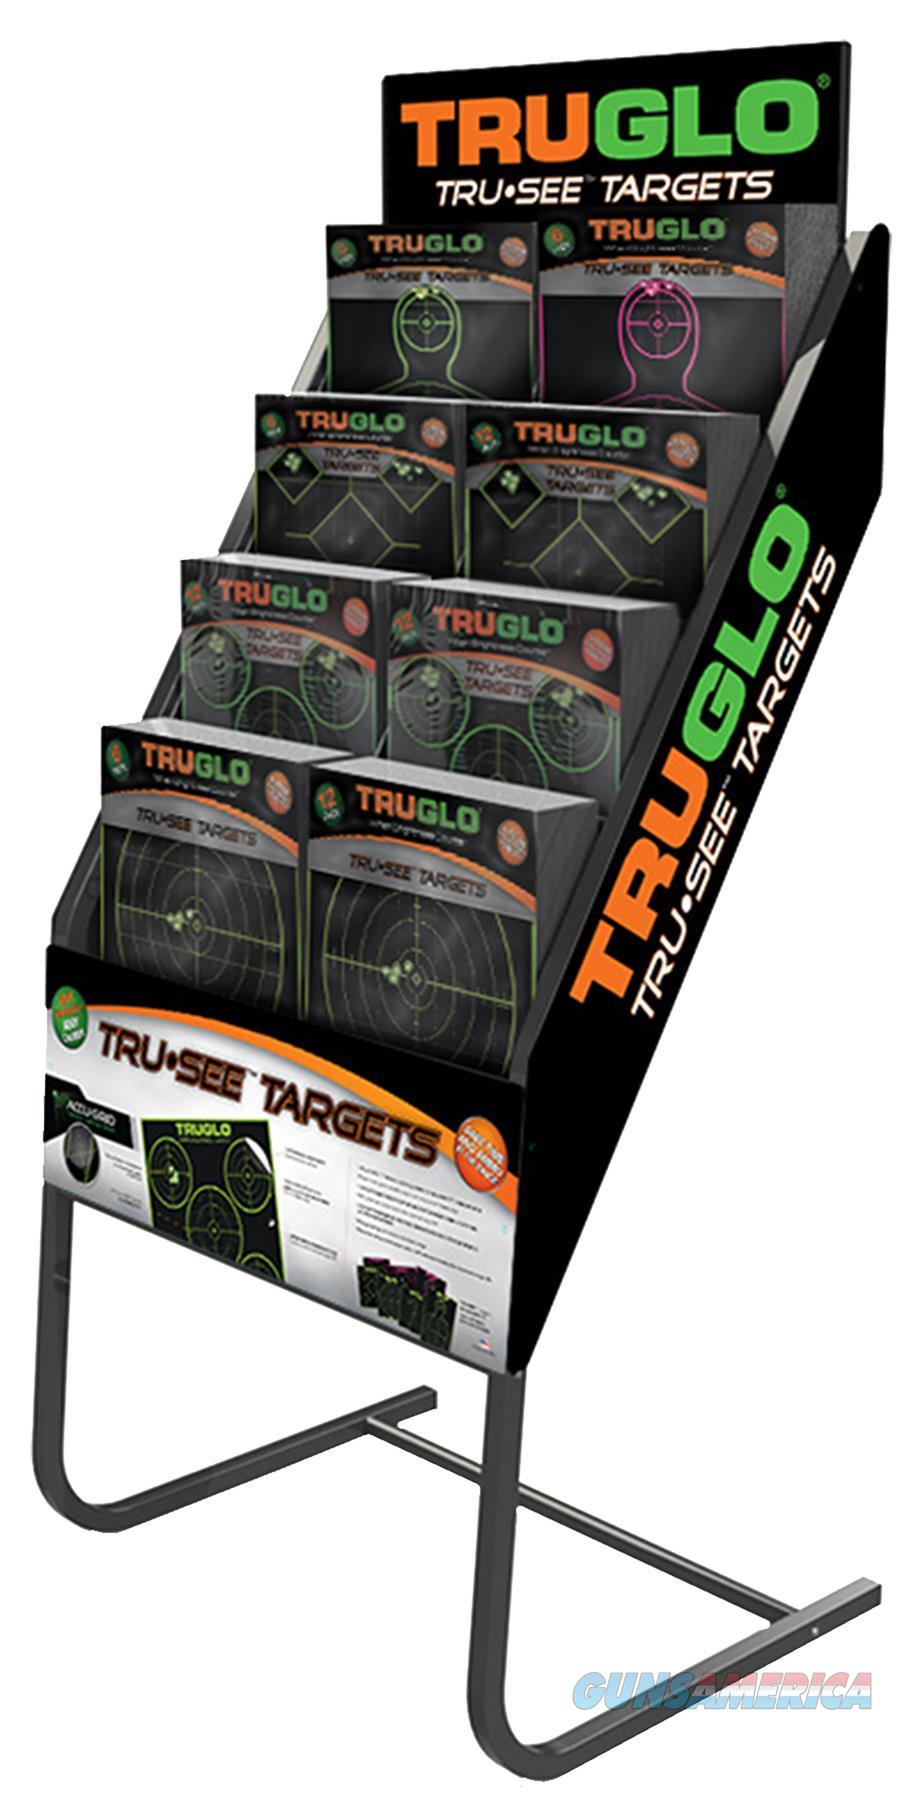 Truglo Tg100p1 Tru-See Target Display W/Product 72 Packs Floor TG100P1  Non-Guns > Traps - Trapline Use